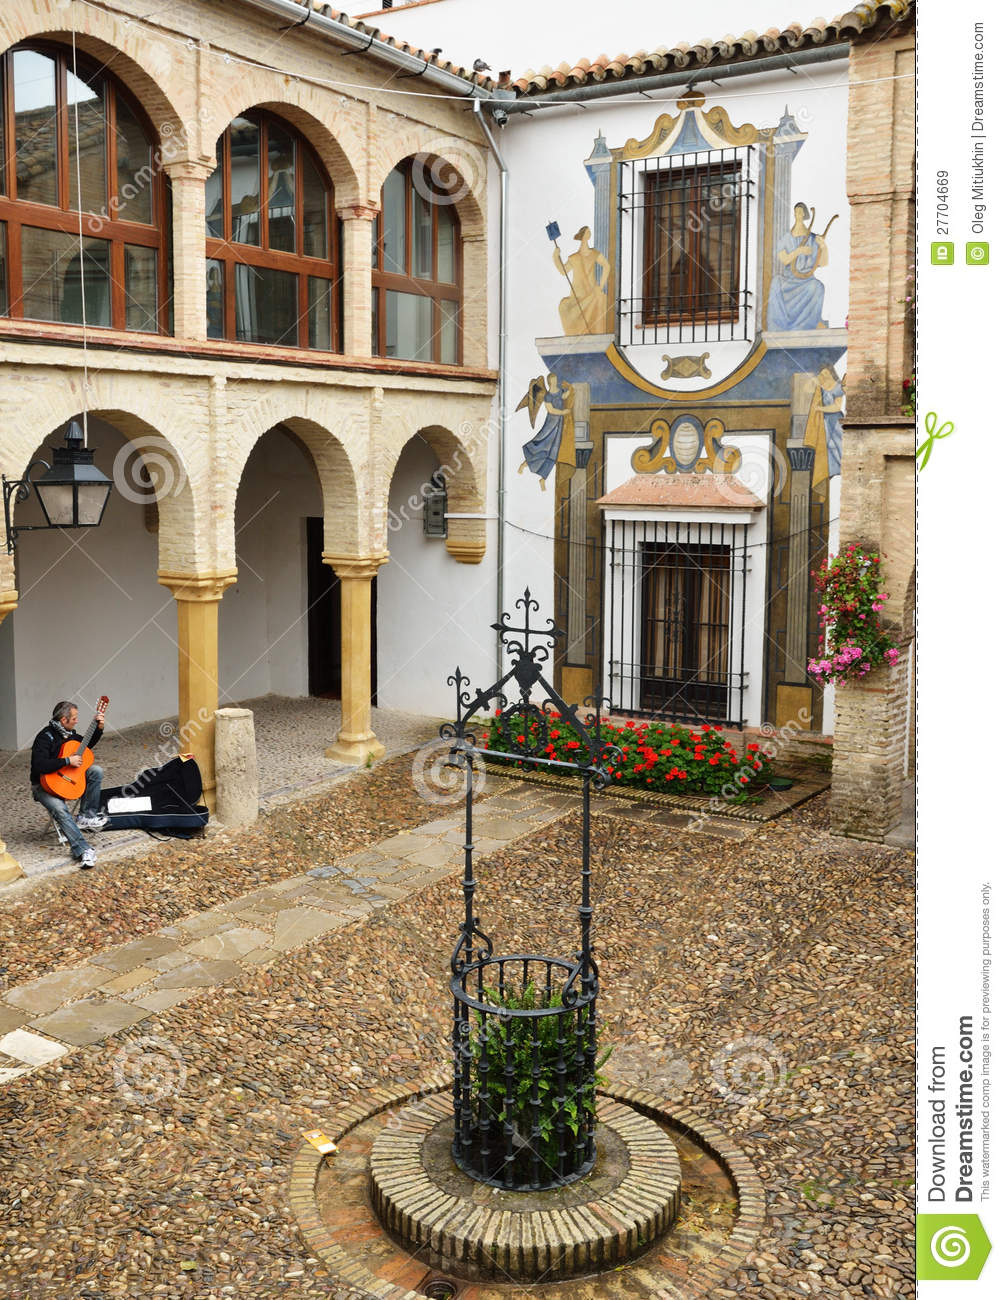 Patio de la maison espagnole antique image stock ditorial for Decoration espagnole maison